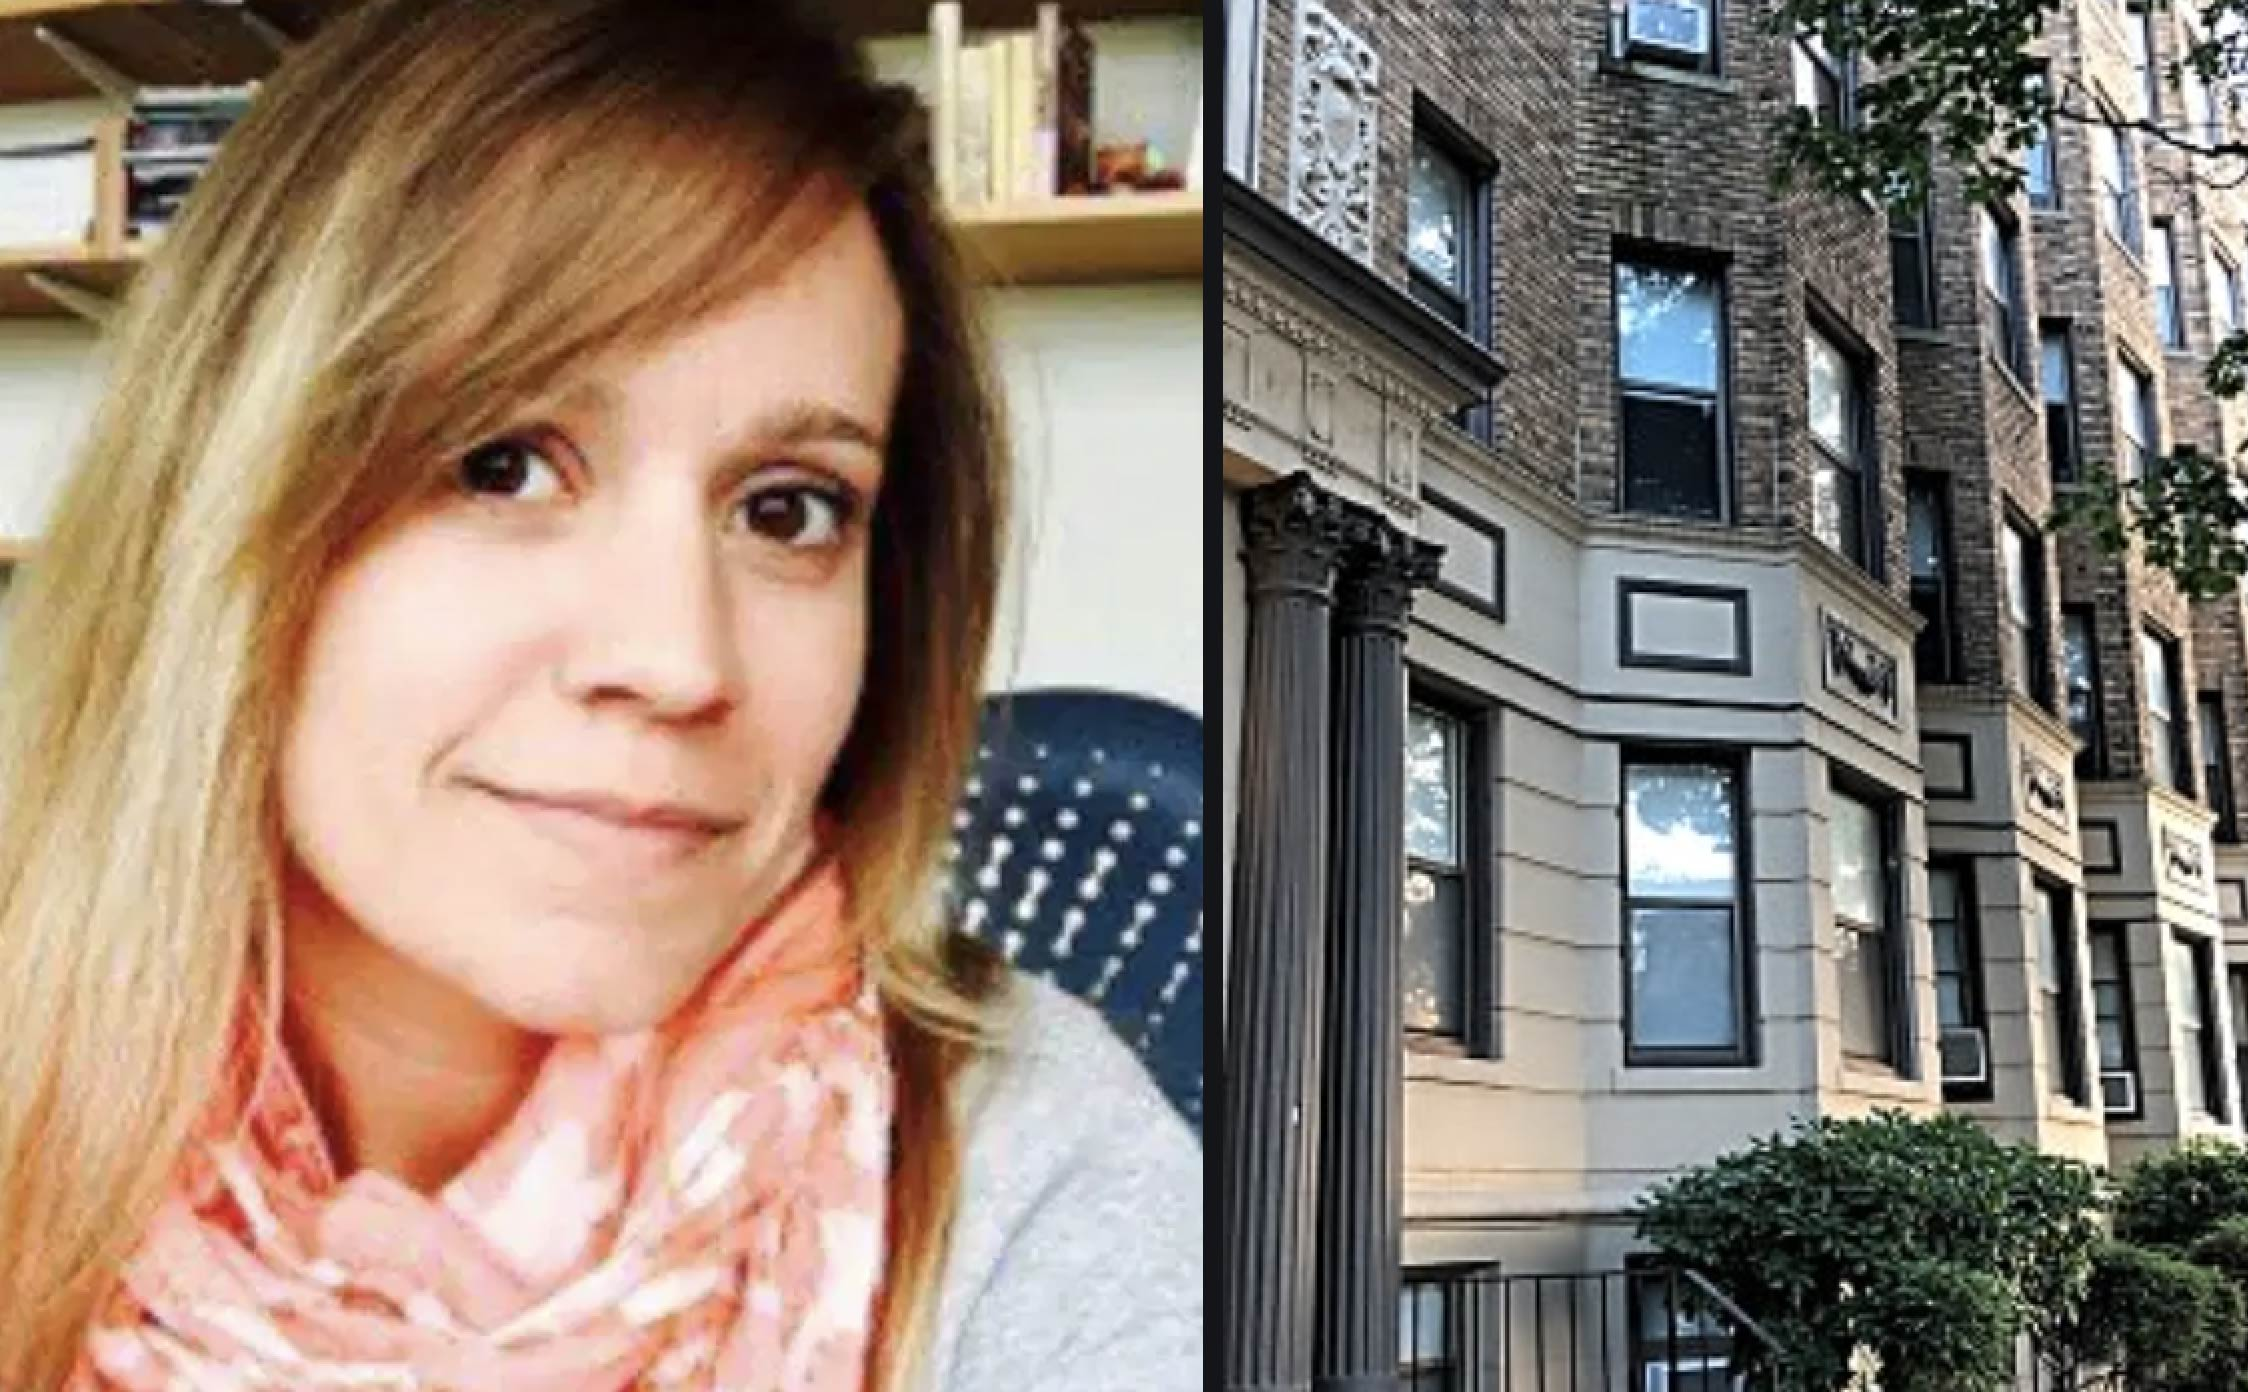 38-Year-Old Boston University Professor Crushed to Death While Loading Packages Onto Apartment Elevator